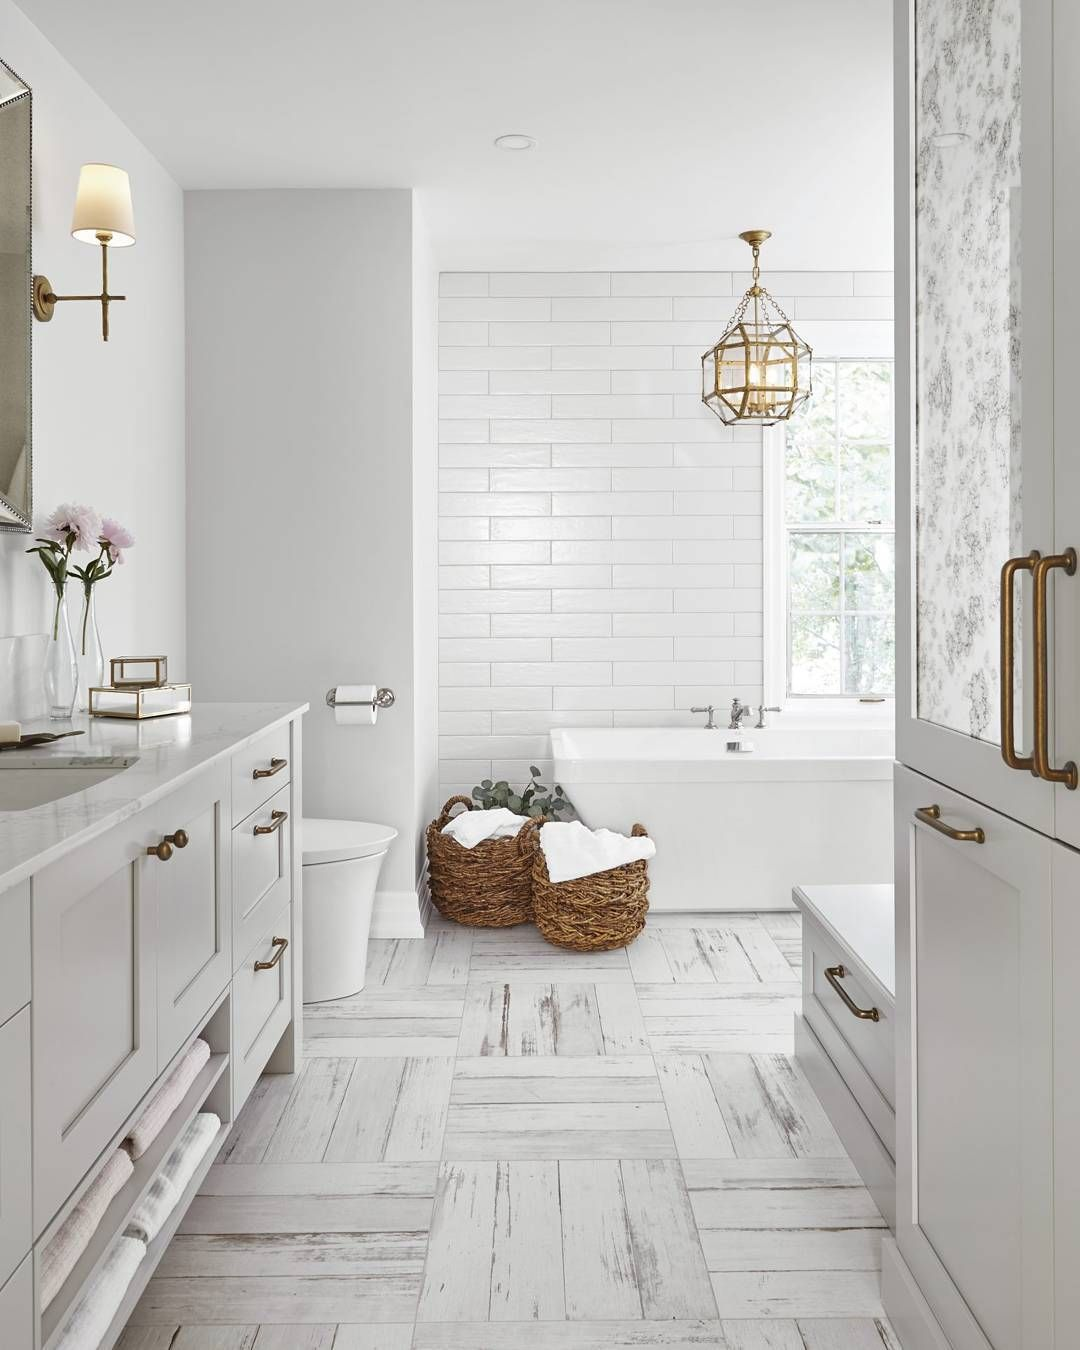 Farmhouse Bathroom Via Home Bunch The Crosshatch Floor Tiles Contrast Perfectly With The Subw Elegant Bathroom Design Elegant Bathroom Bathroom Remodel Master